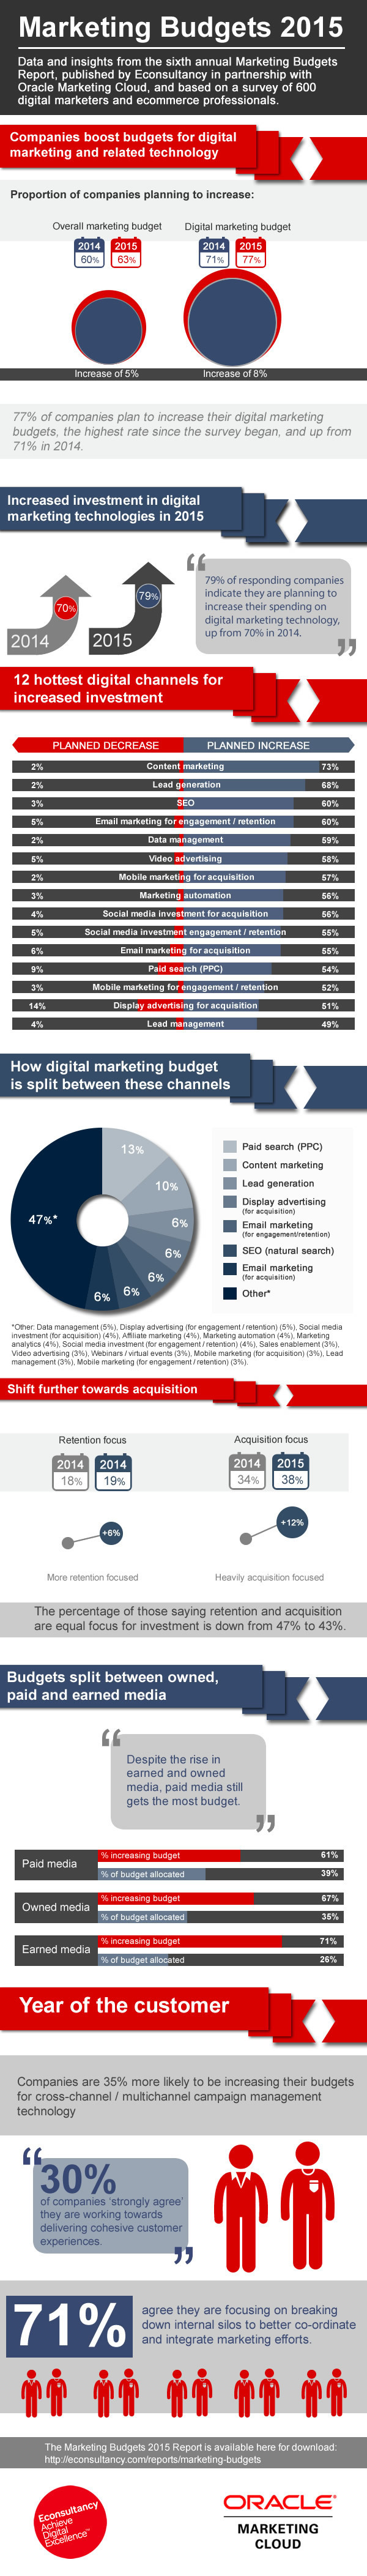 Marketing-Budgets-2015-infographic